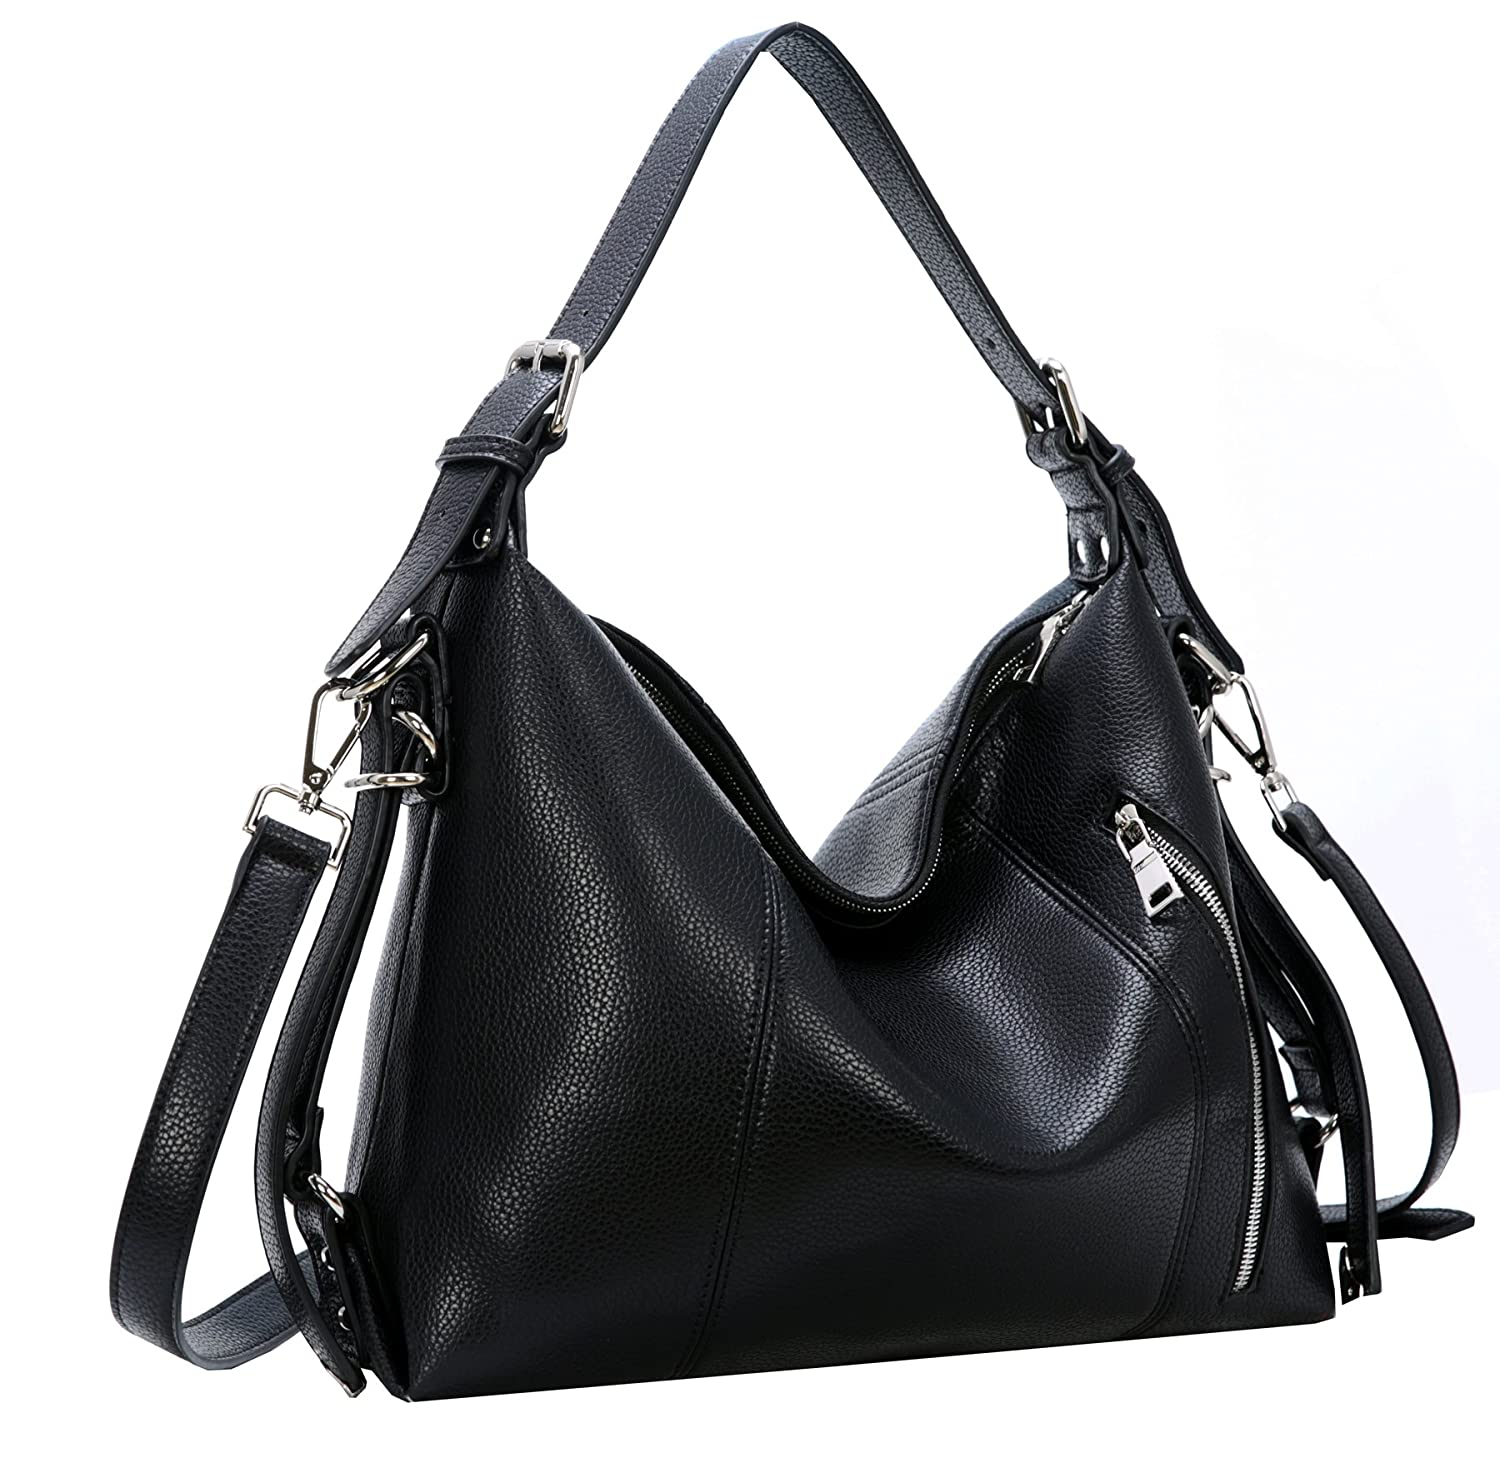 d734562cbb Amazon.com  Heshe Womens Leather Shoulder Handbags Large Capacity Tote  Purse Top Handle Crossbody Bags Satchel for Office Lady (Black-PU leather)   Shoes